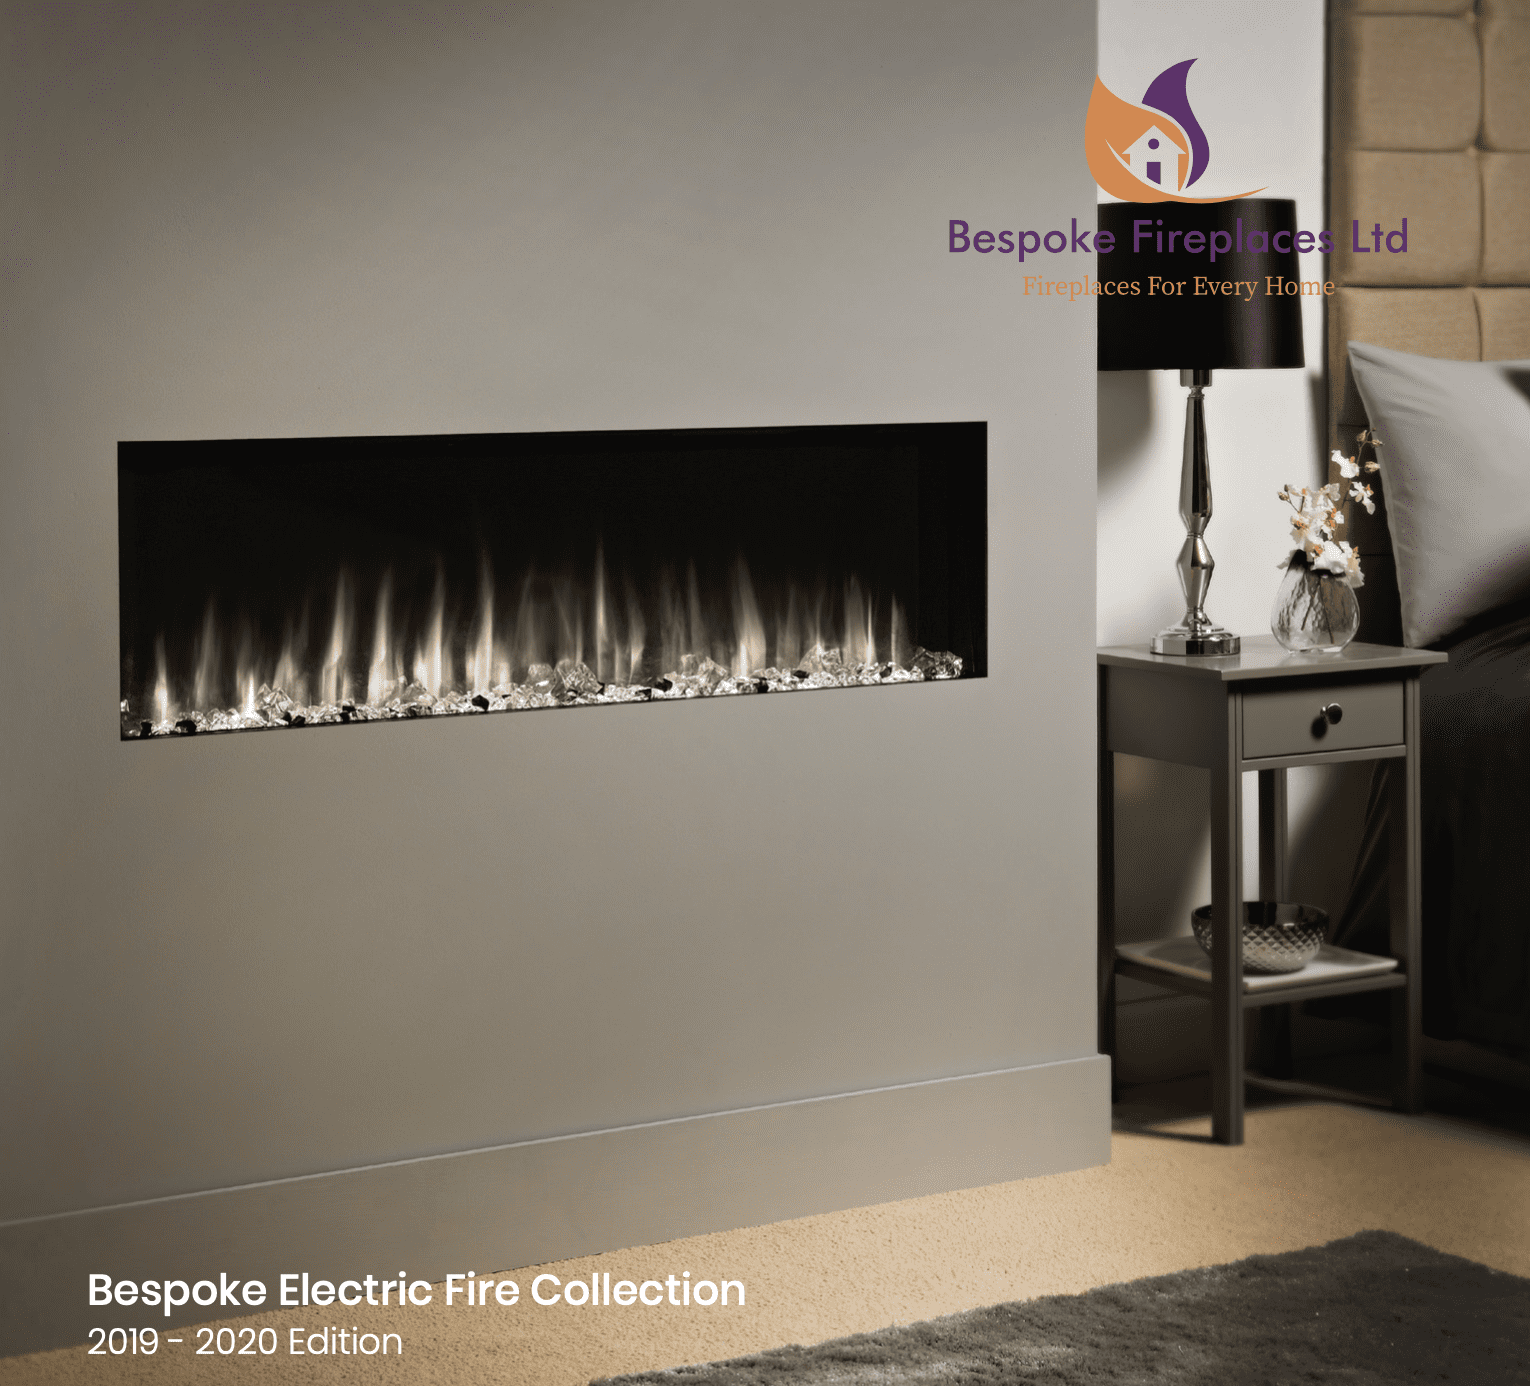 Bespoke Electric Fire Brochure Featured Image